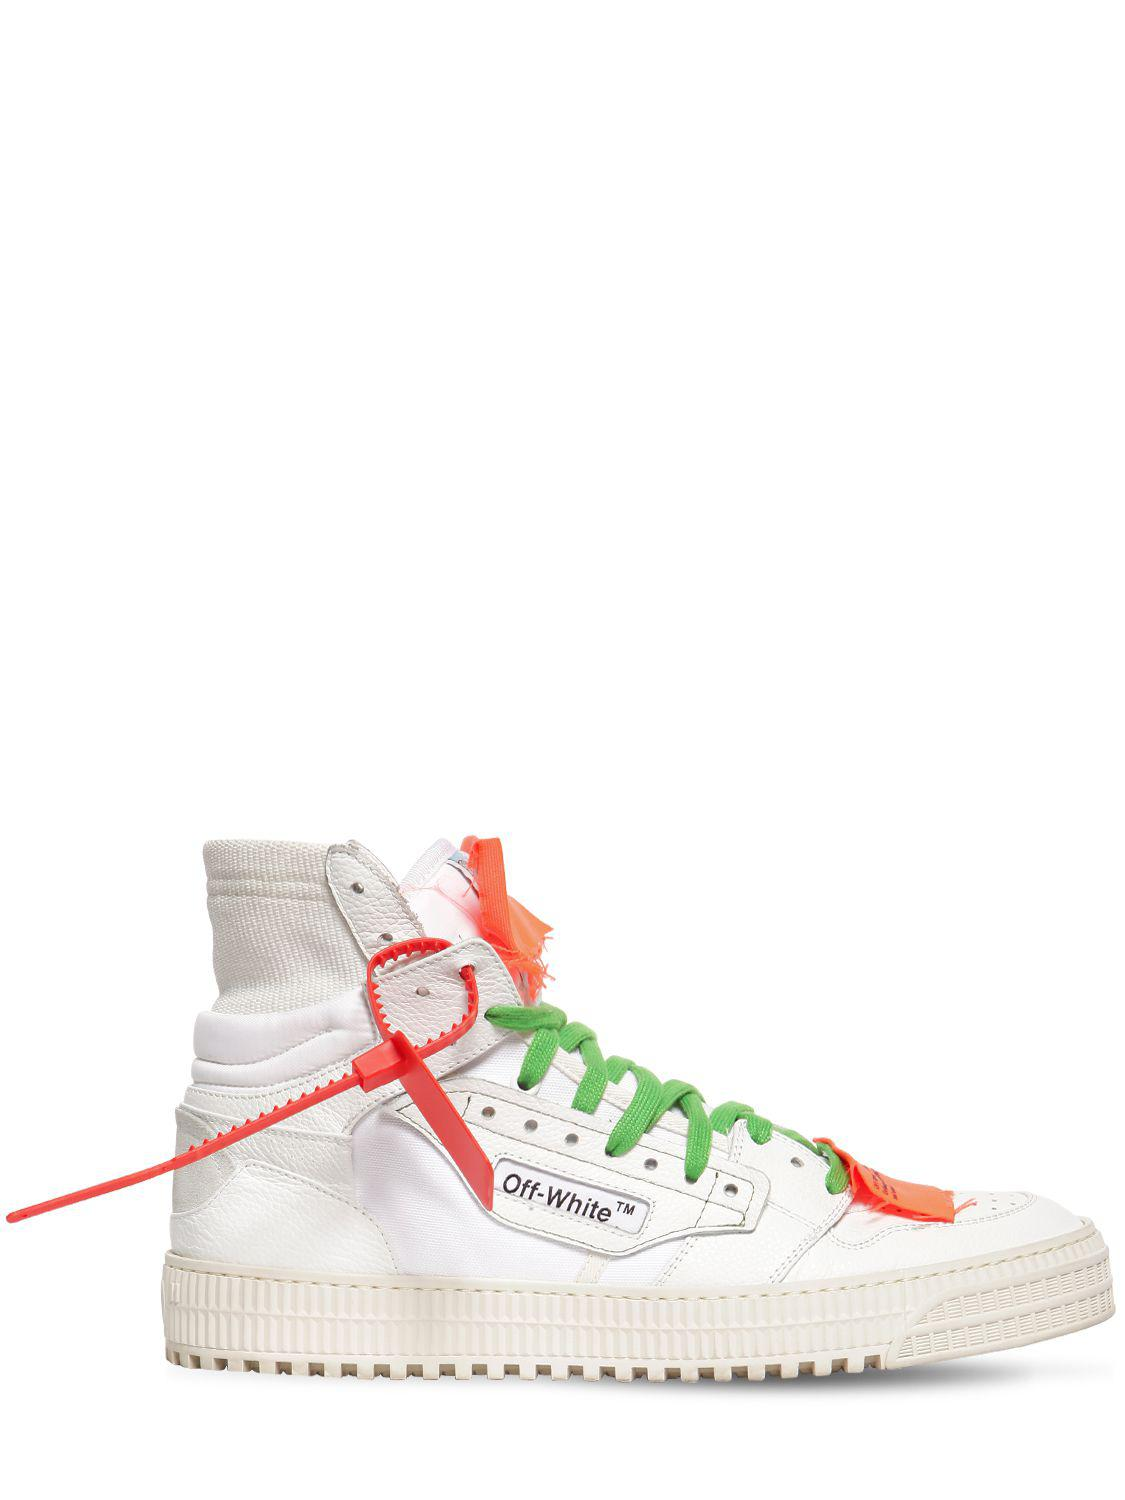 751586dd6d0c Off-White c o Virgil Abloh. Women s White Low 3.0 Leather High Top Sneakers